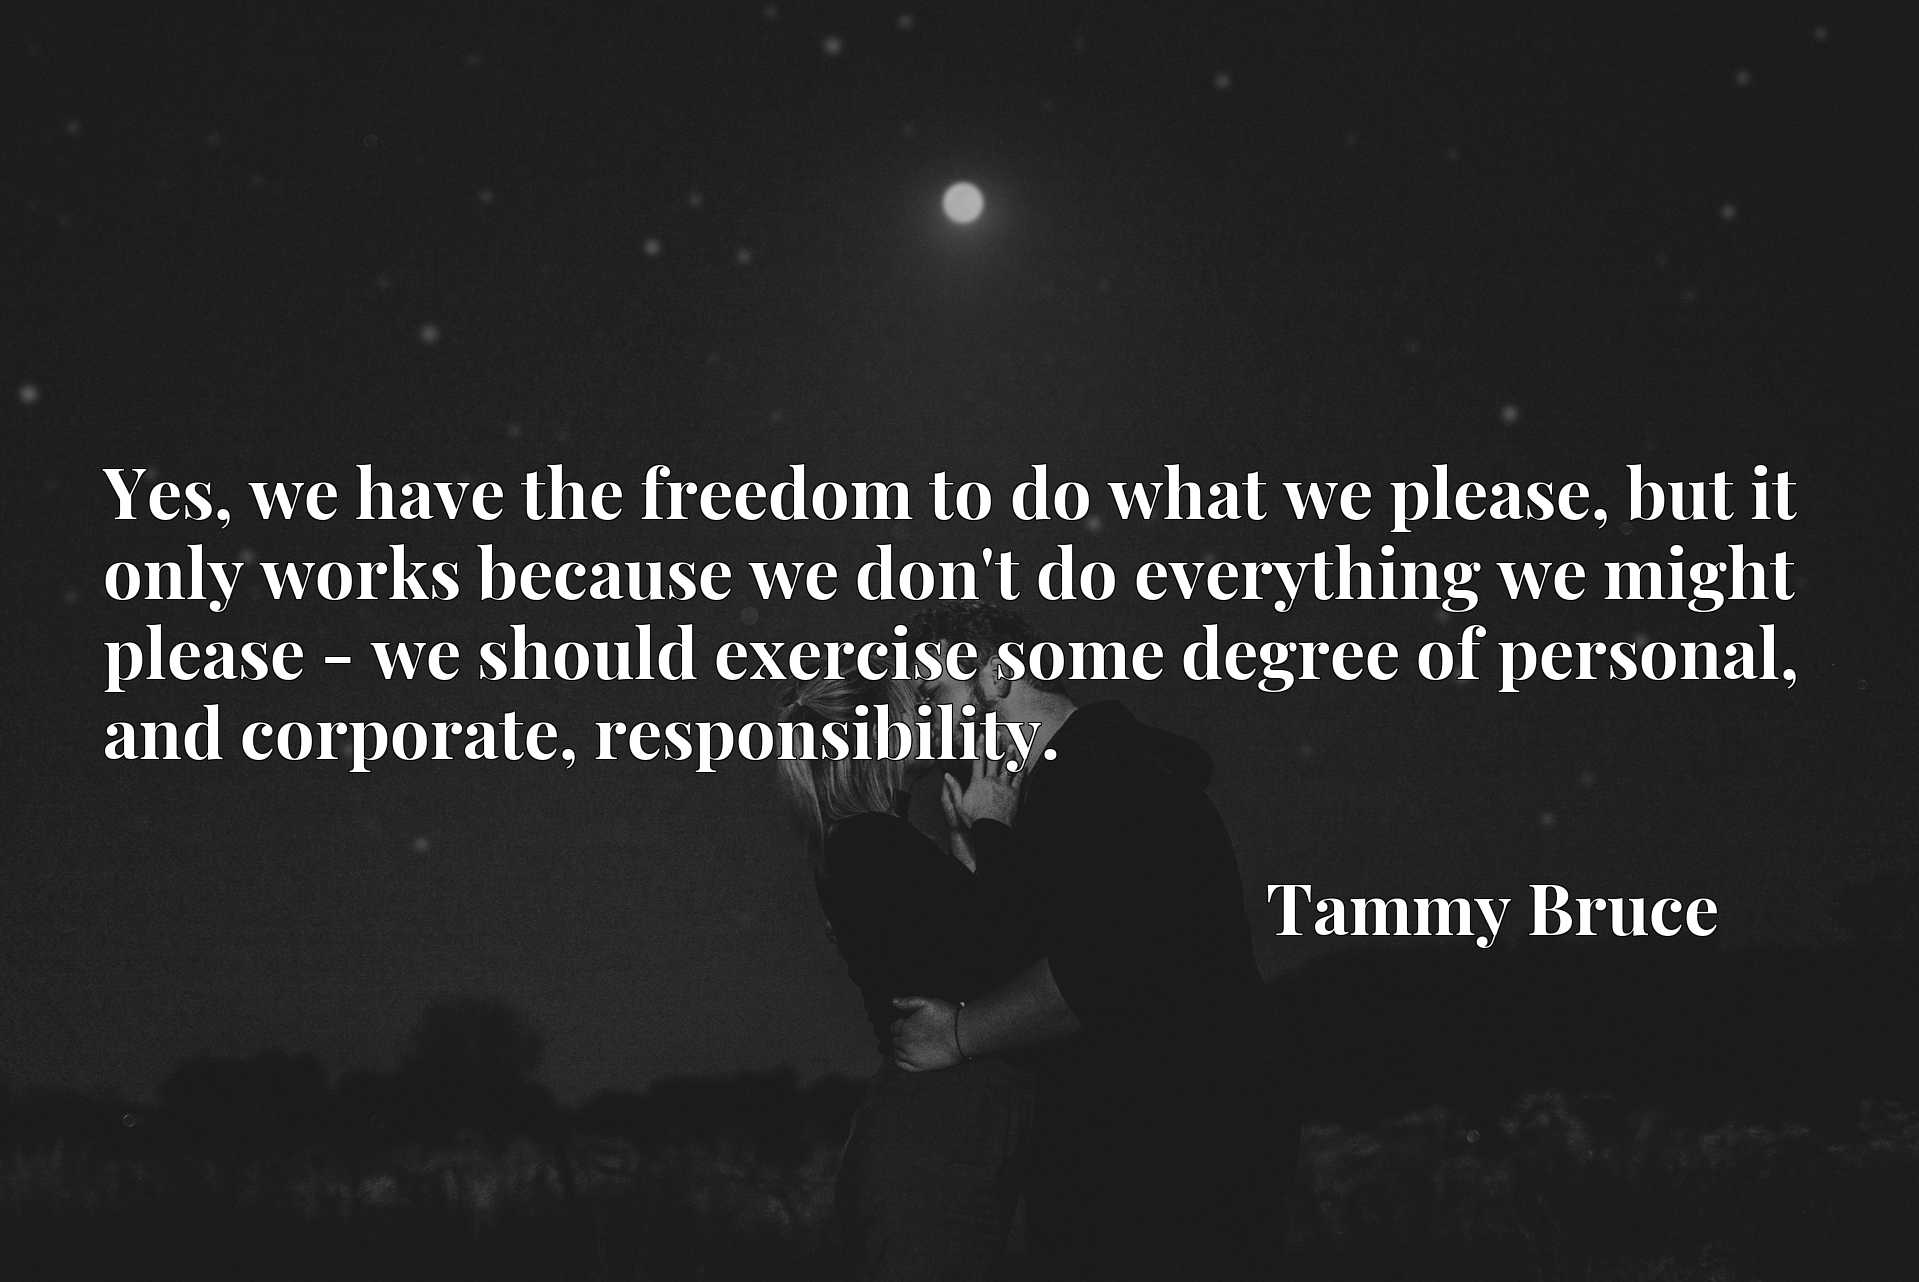 Yes, we have the freedom to do what we please, but it only works because we don't do everything we might please - we should exercise some degree of personal, and corporate, responsibility.